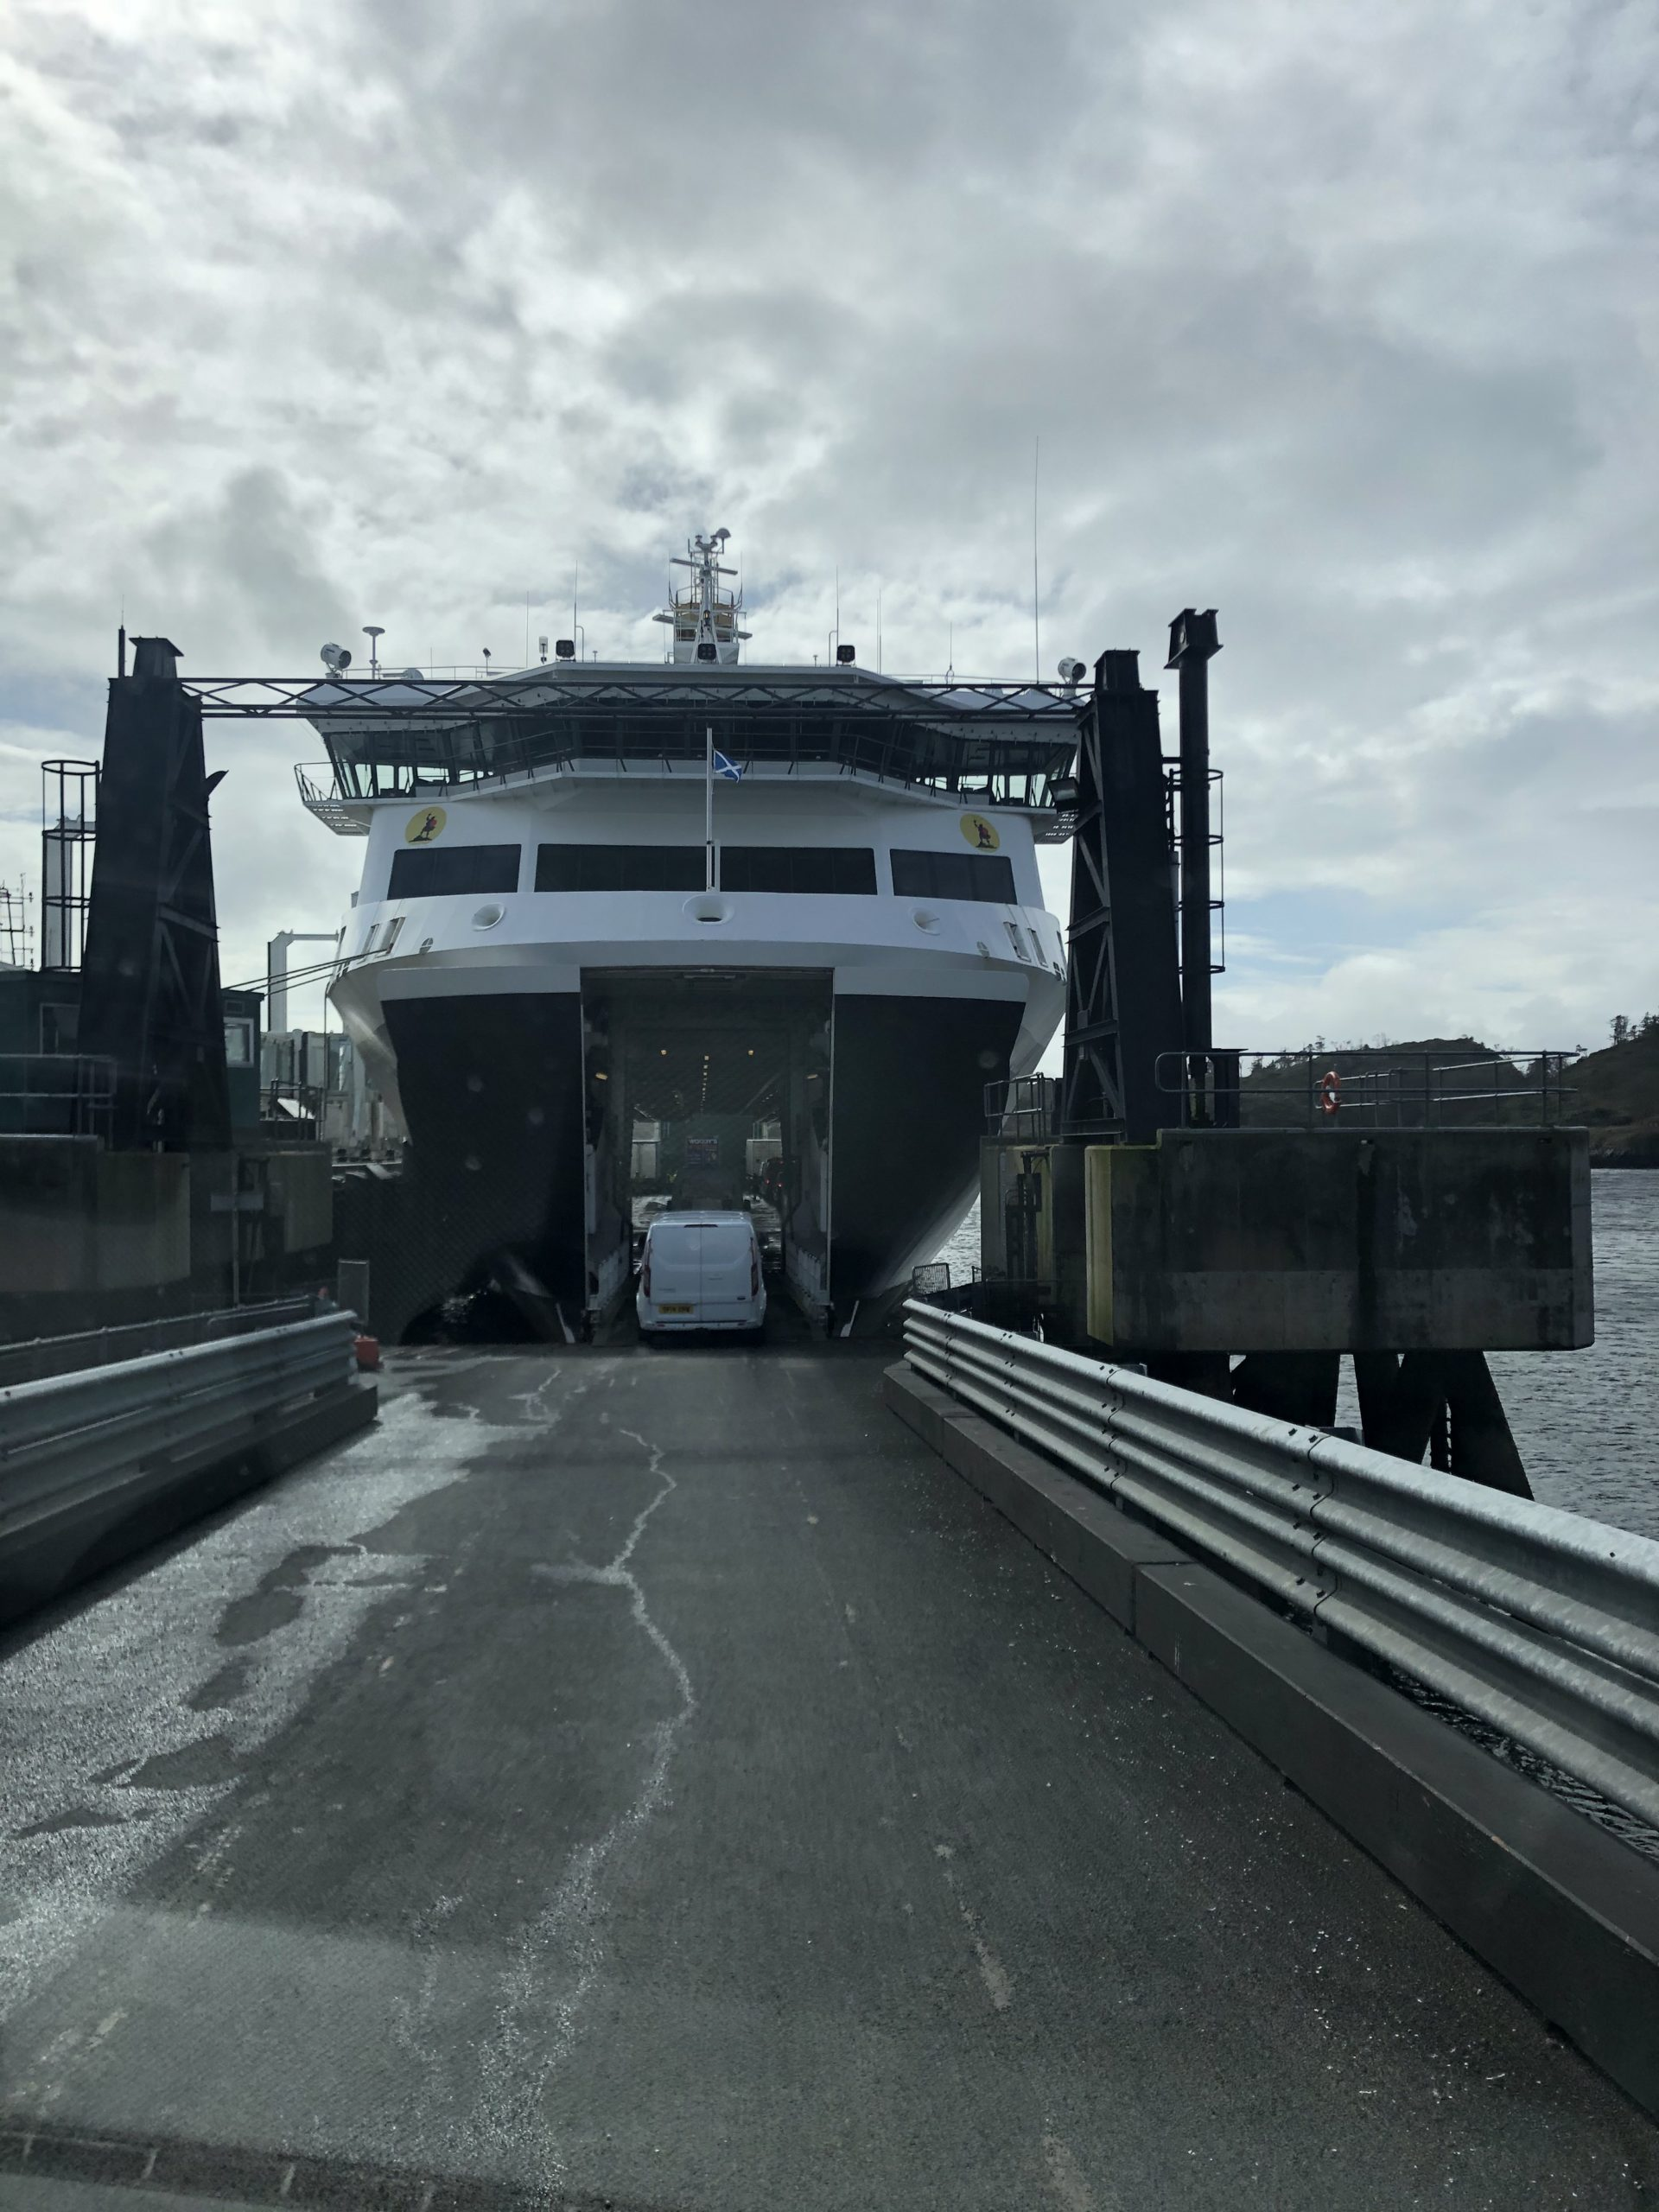 A short ferry ride to the lovely Isle of Lewis to complete the installation of a 4 Post Lift.